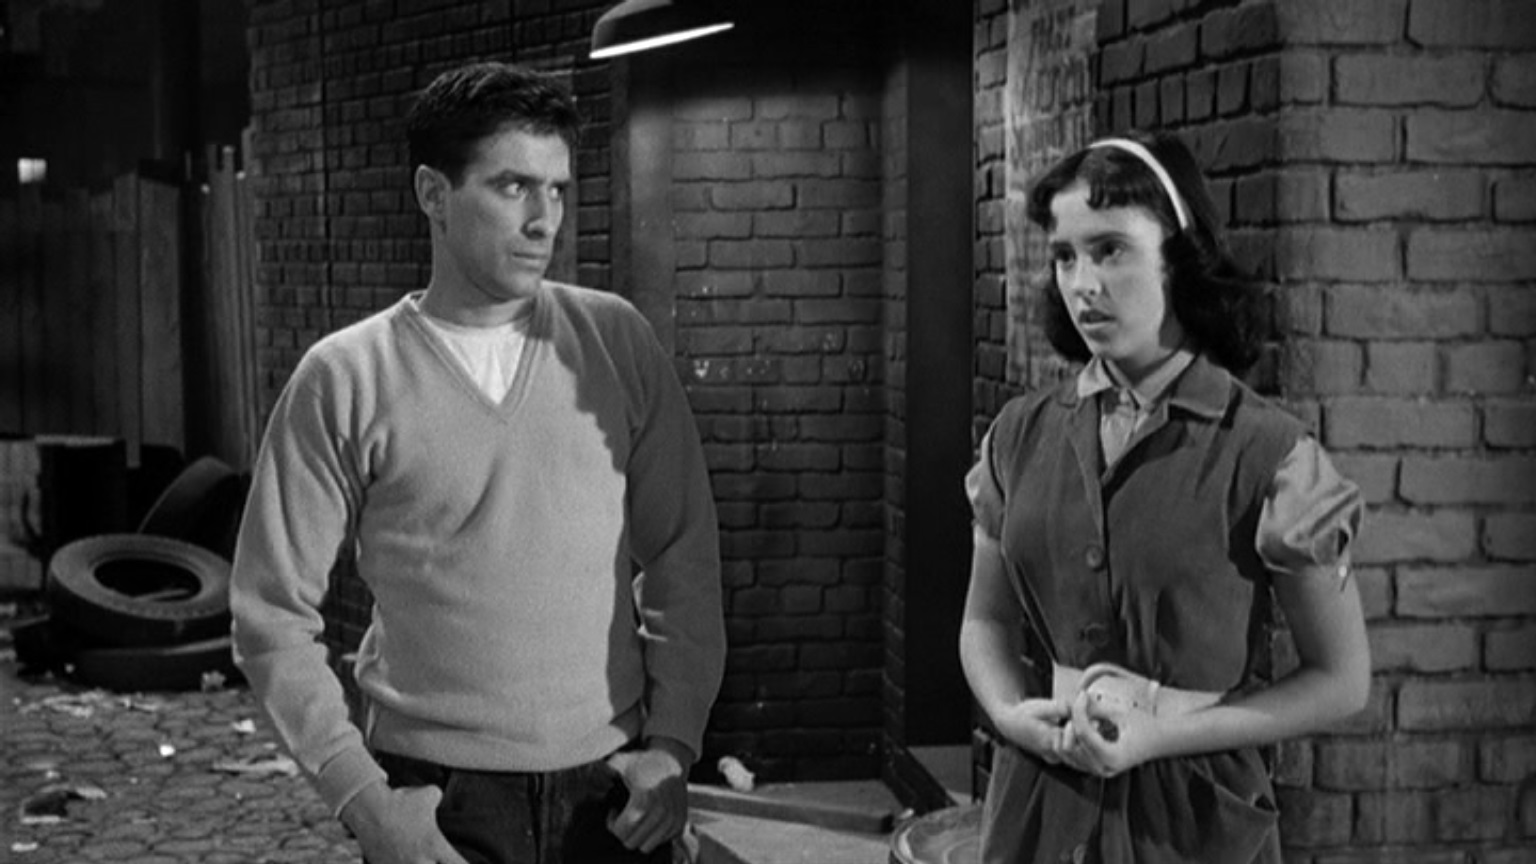 John Cassavetes and Denise Alexander in Crime in the Streets (1956)